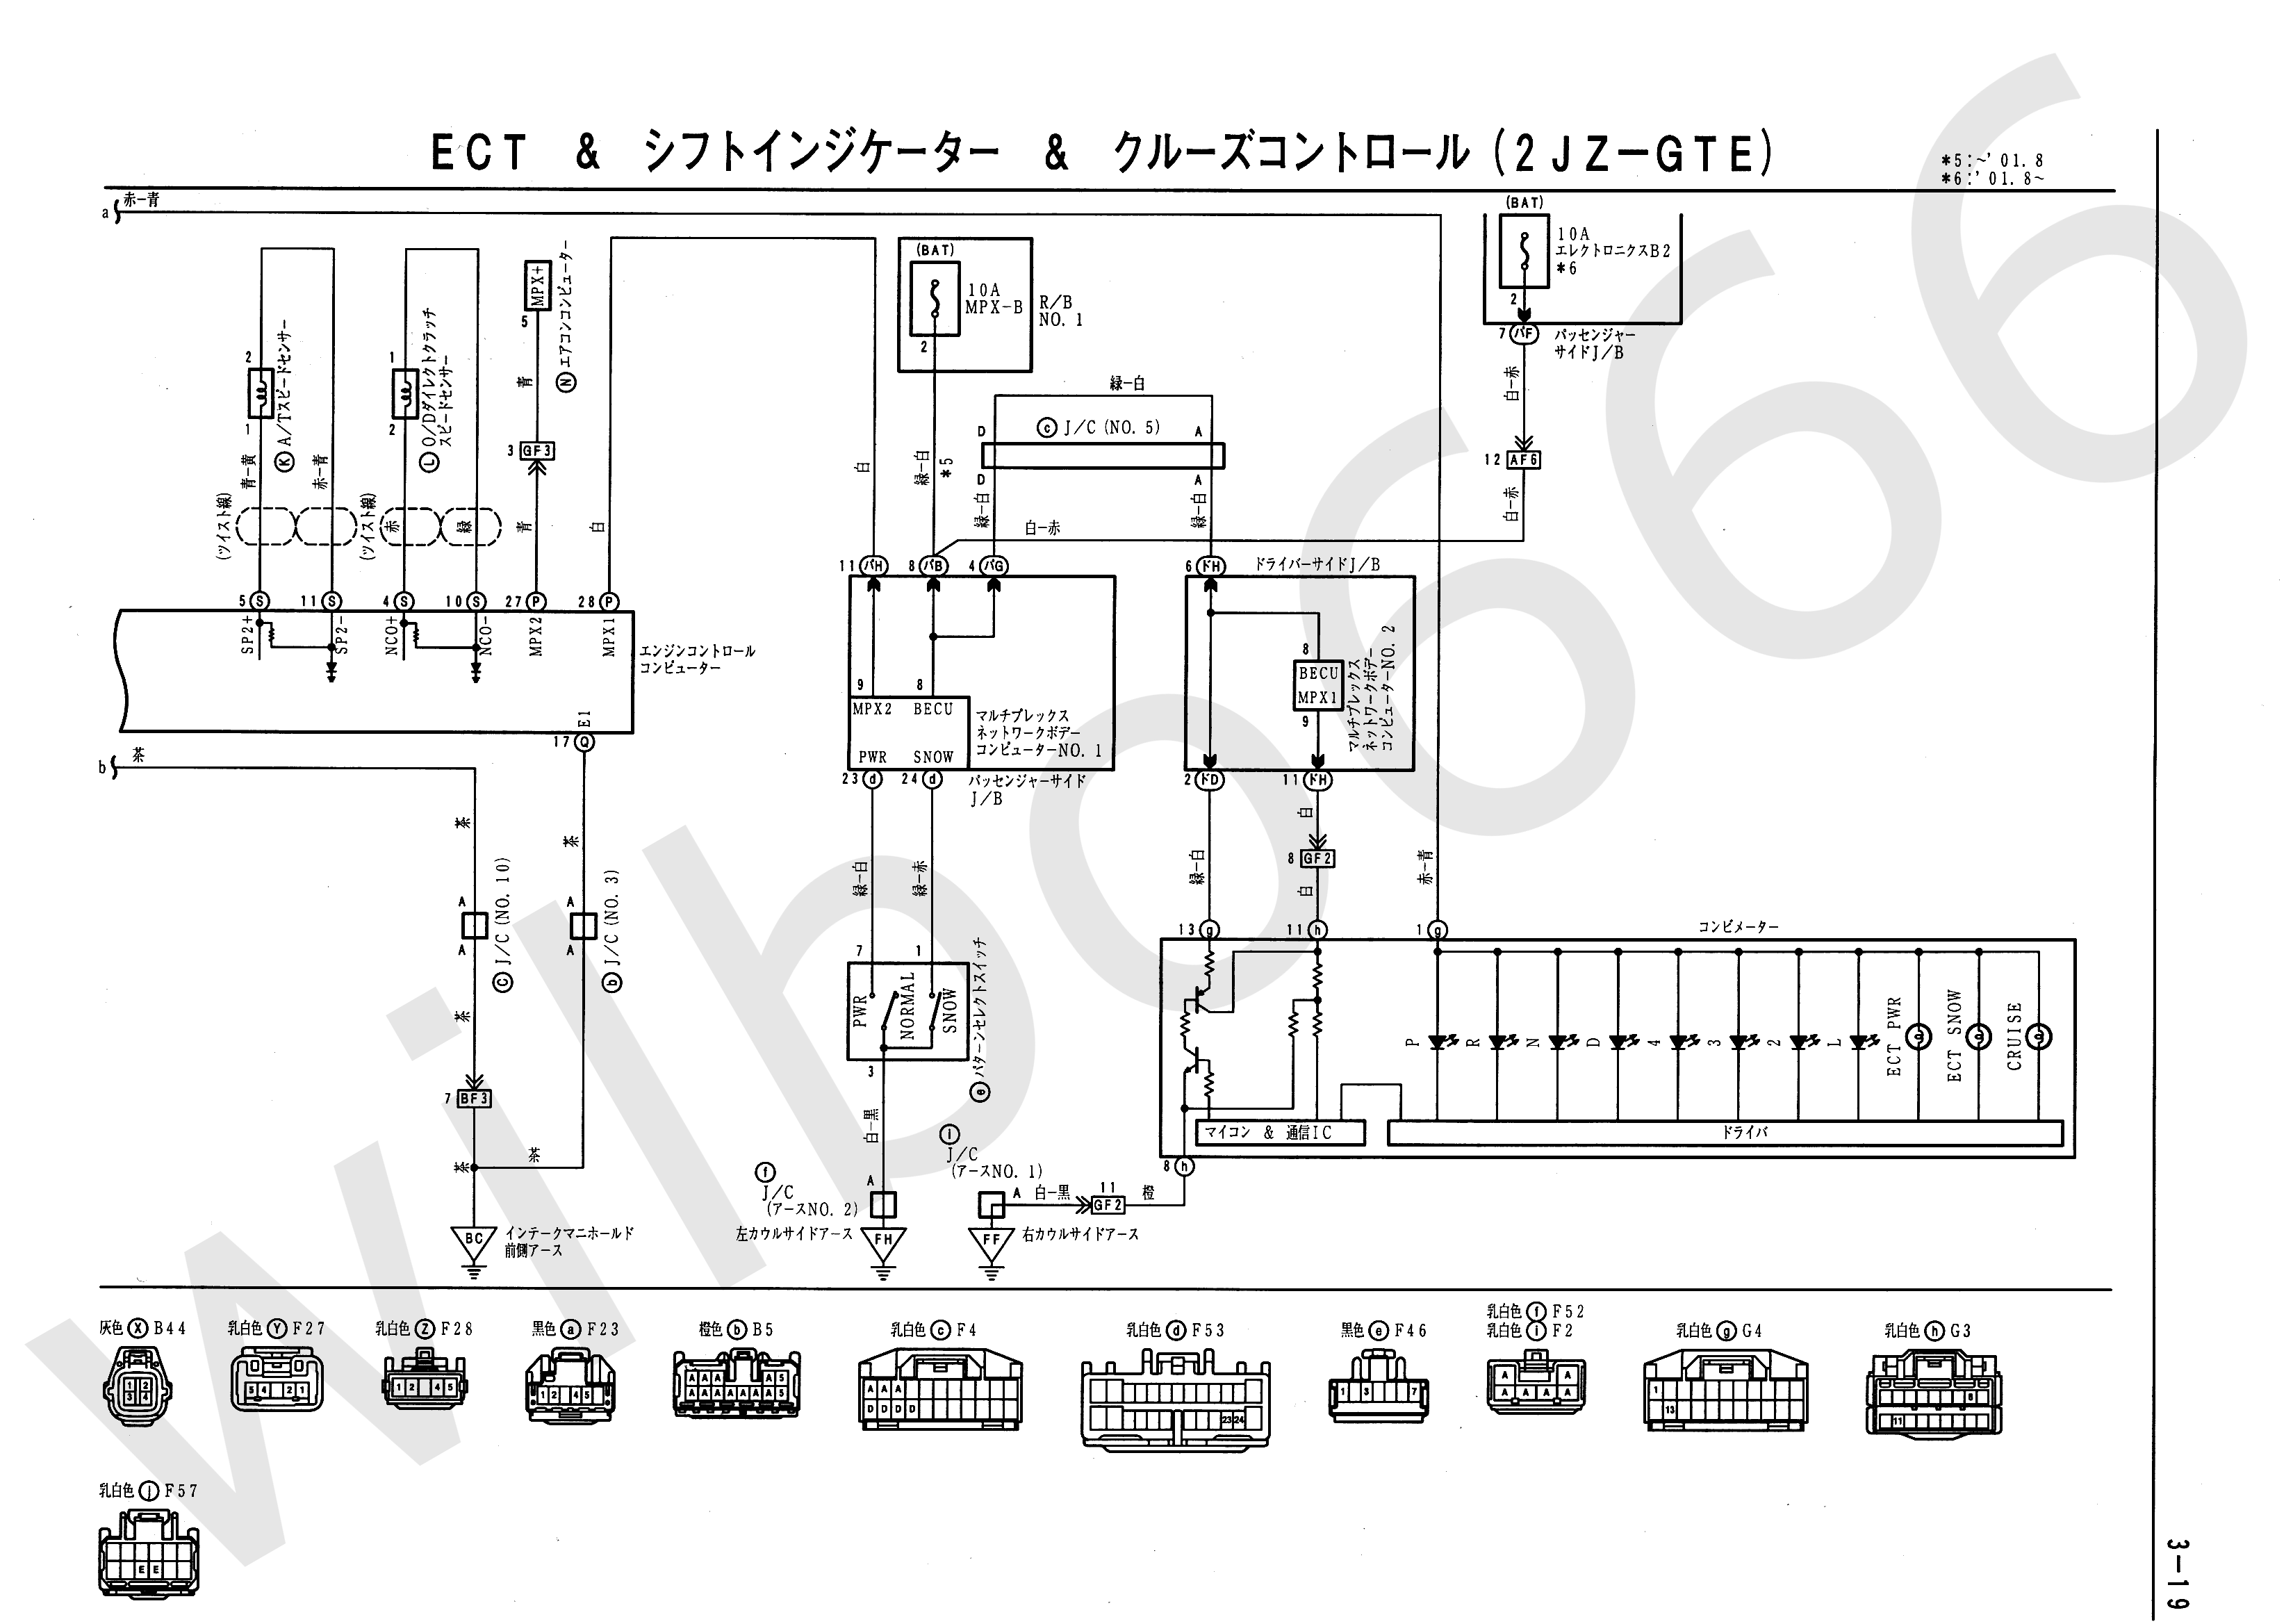 JZS161 Electrical Wiring Diagram 6748505 3 19 wilbo666 2jz gte vvti jzs161 aristo engine wiring 2jzgte wiring diagram at mifinder.co